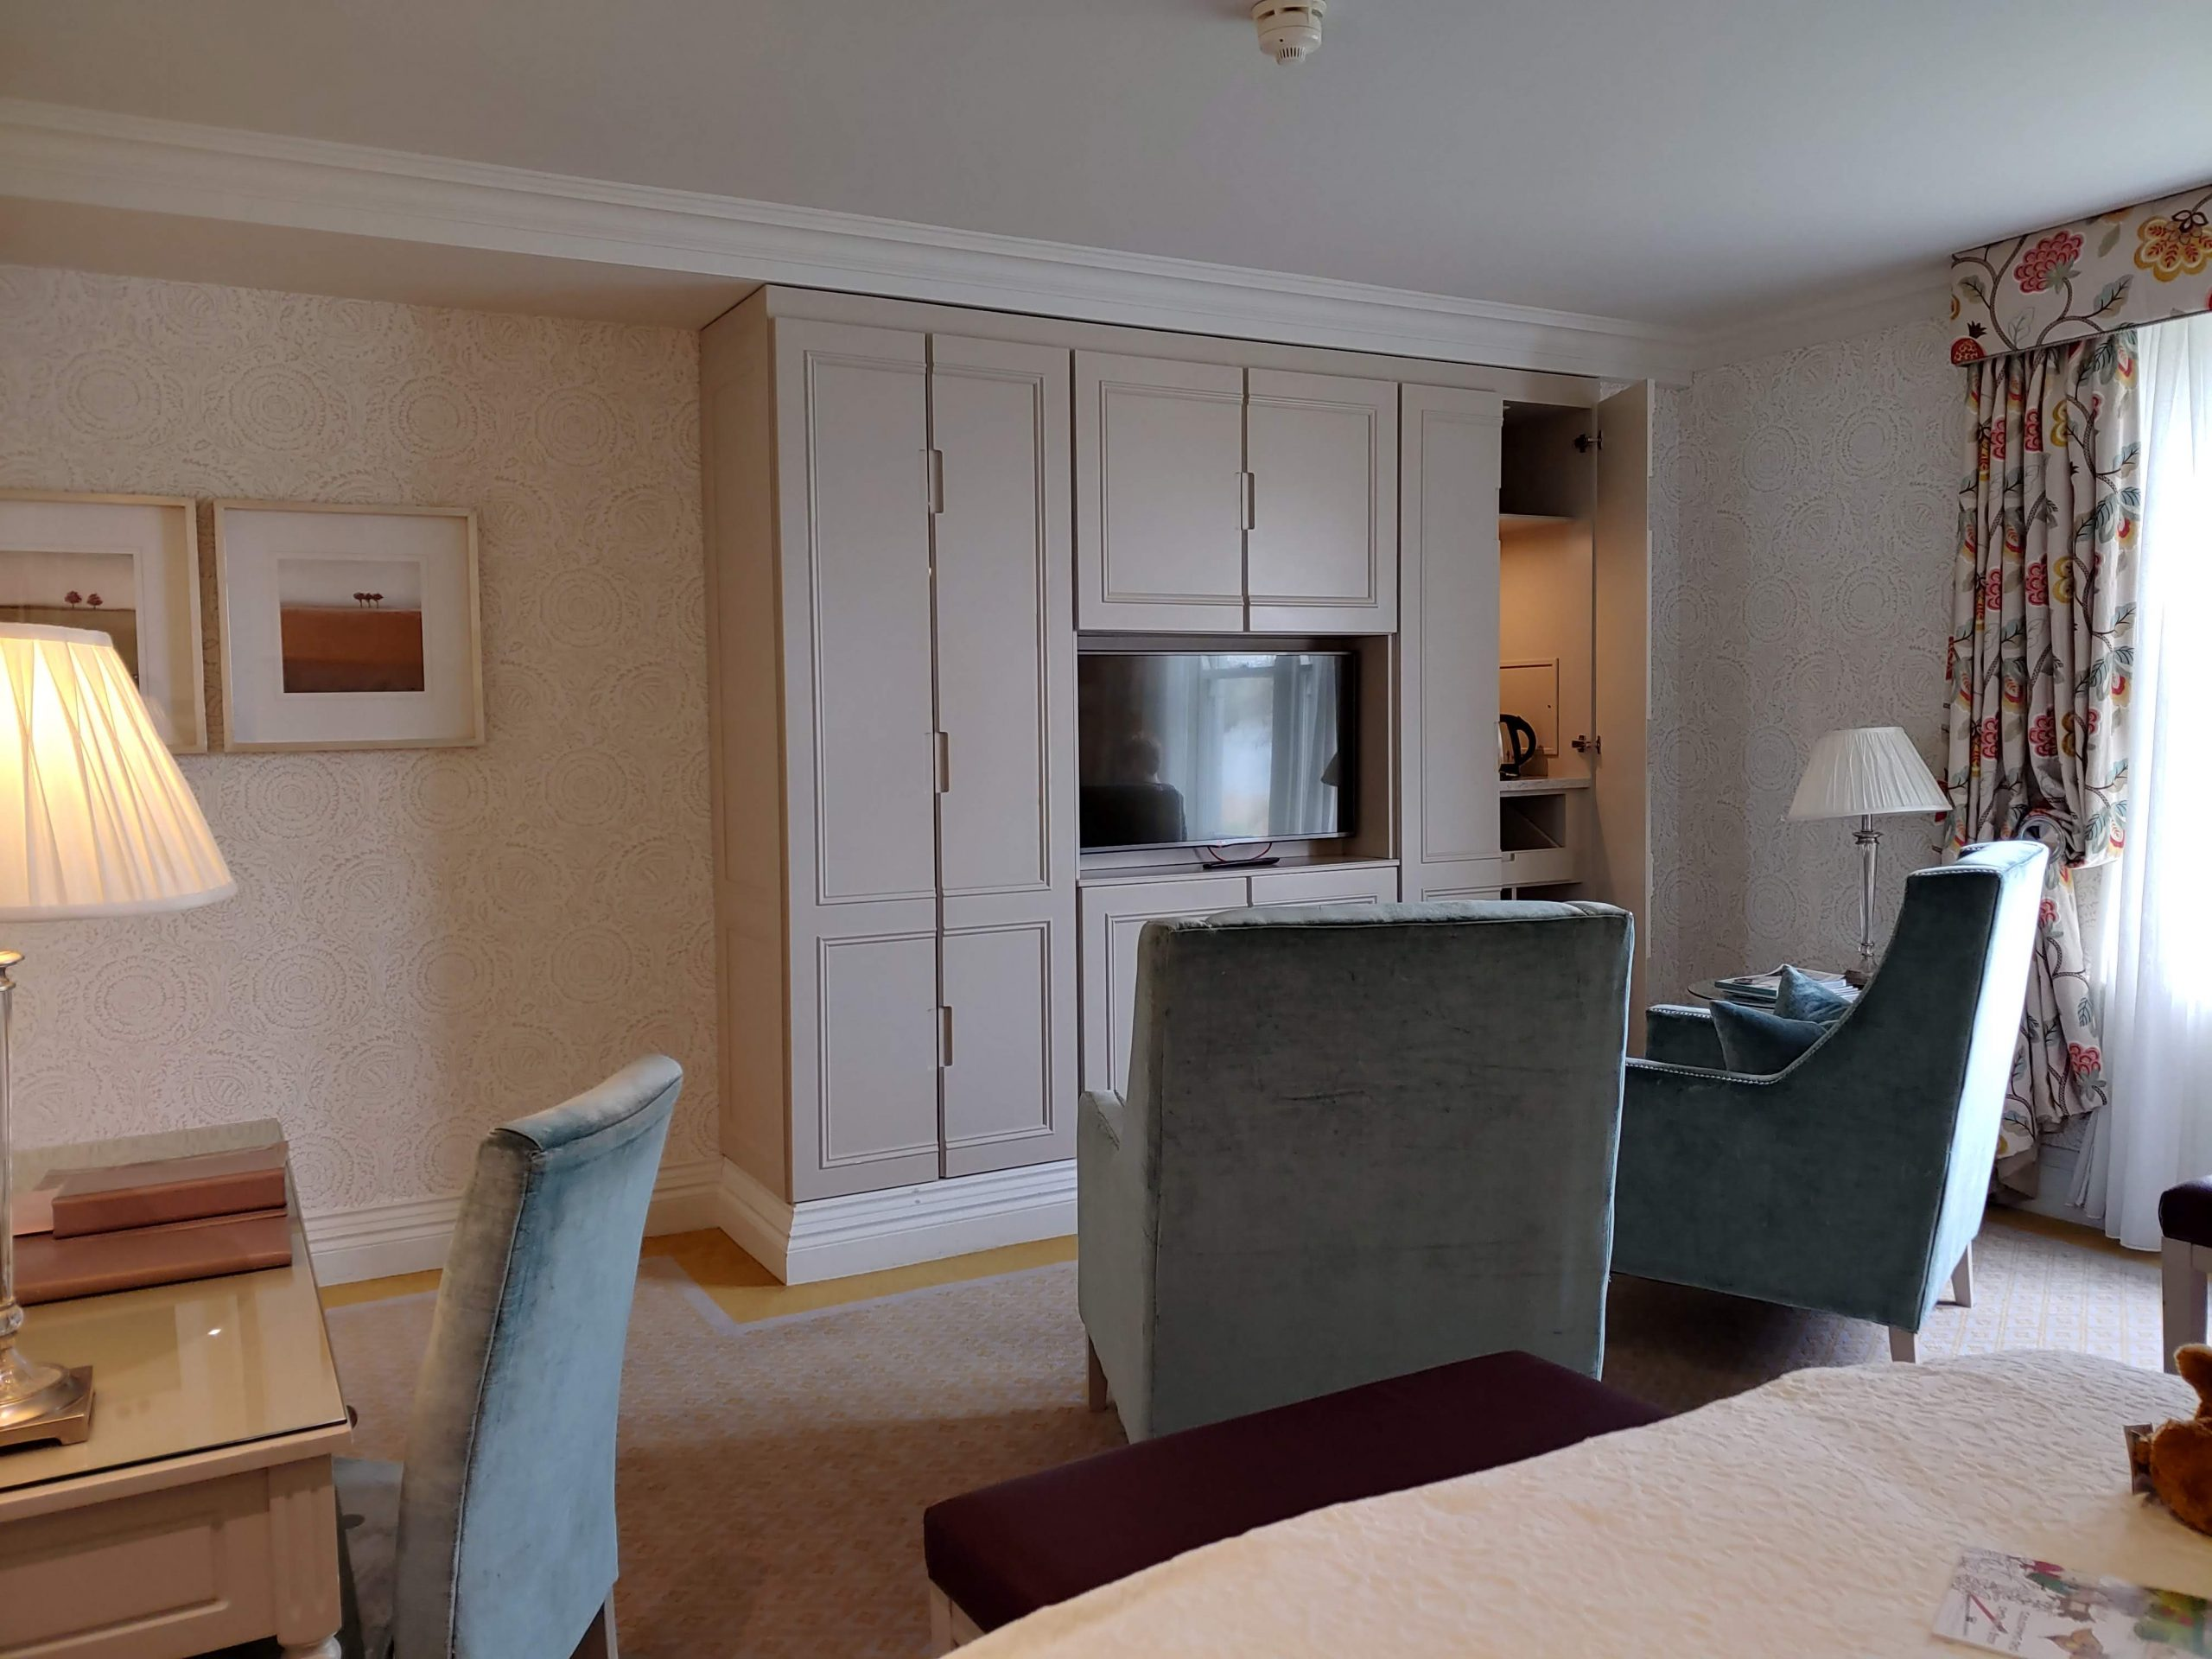 The suite of the castle hotel